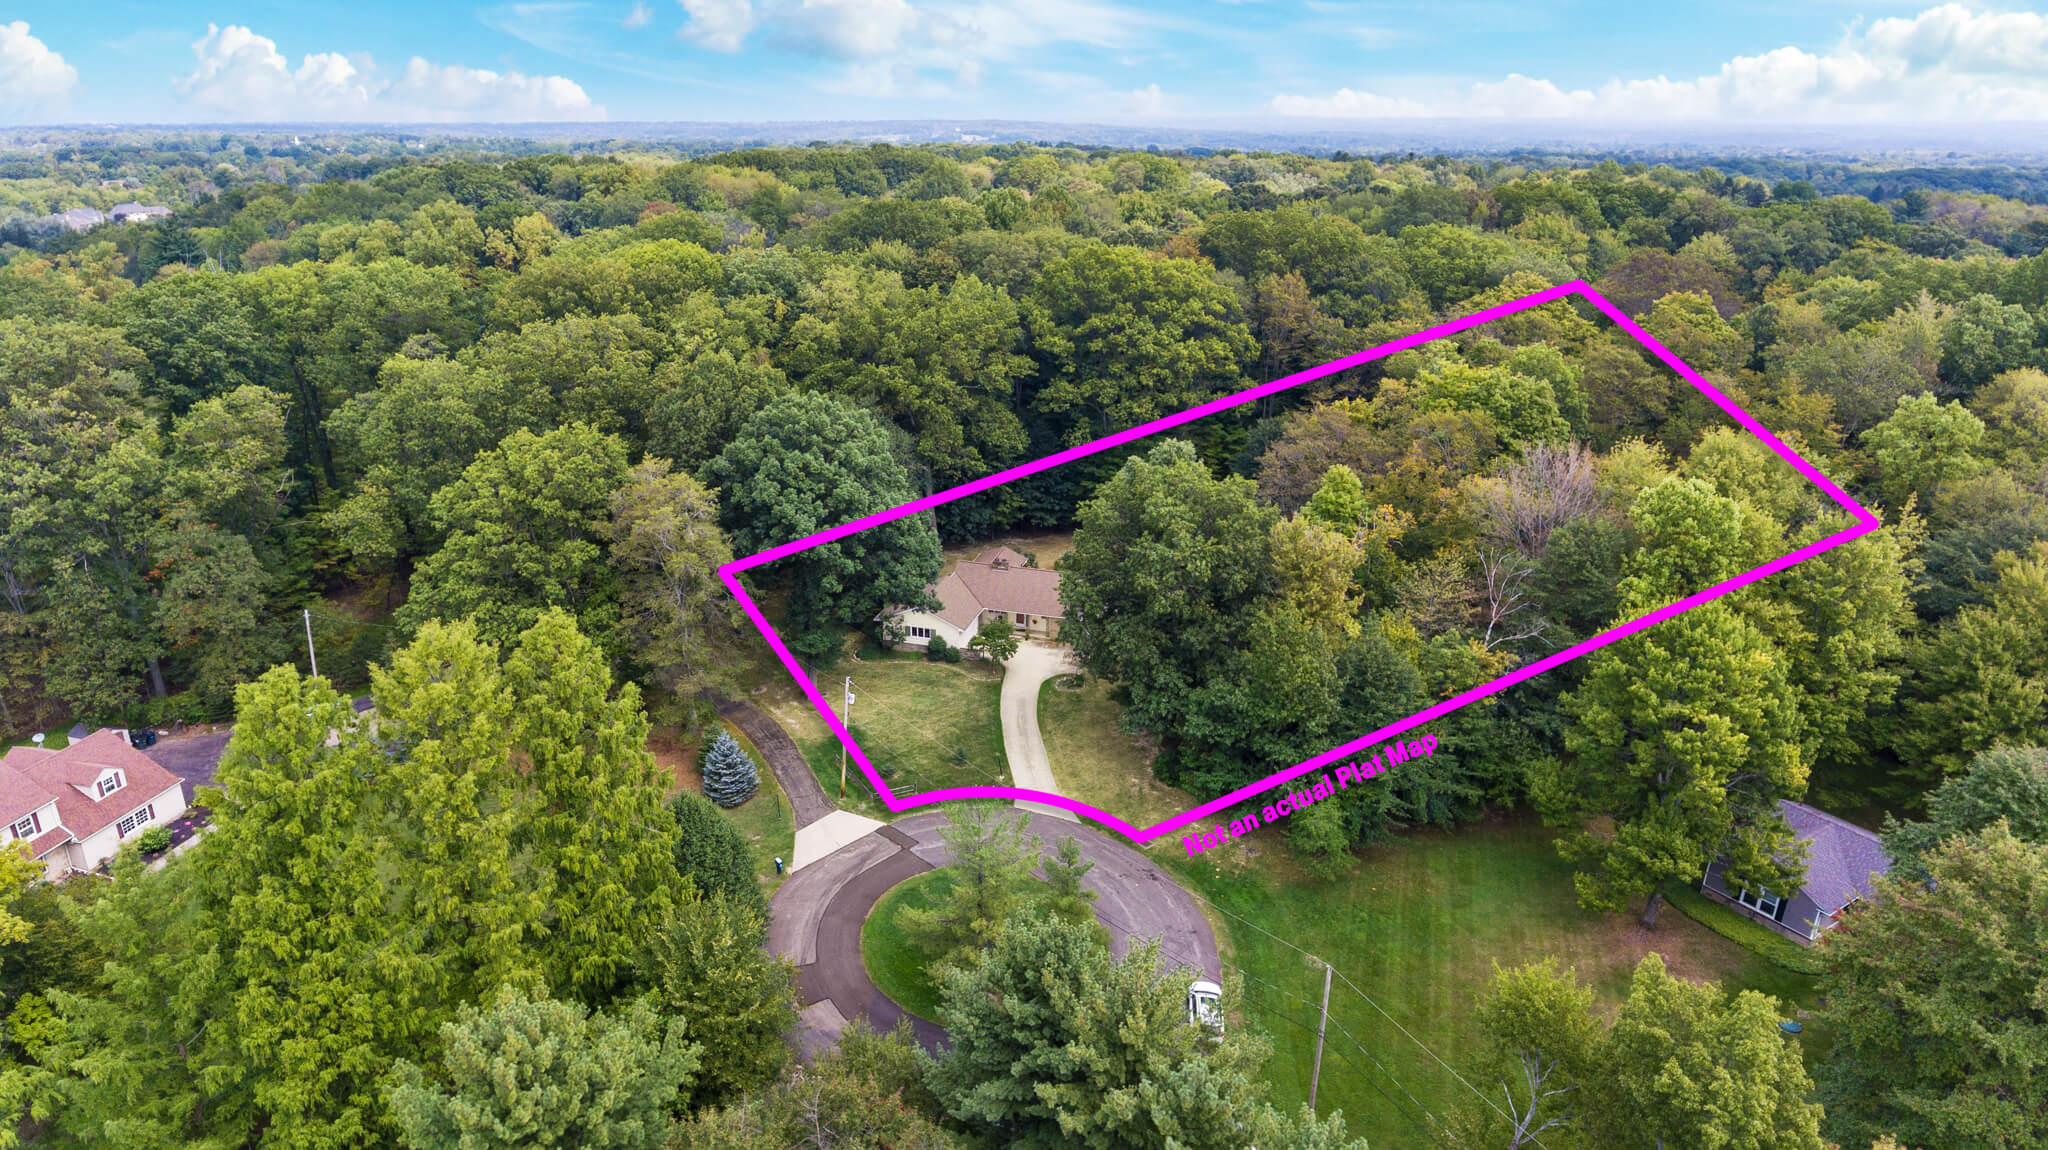 Over 2 acres of space at 4349 Orandale Dr in Chagrin Falls